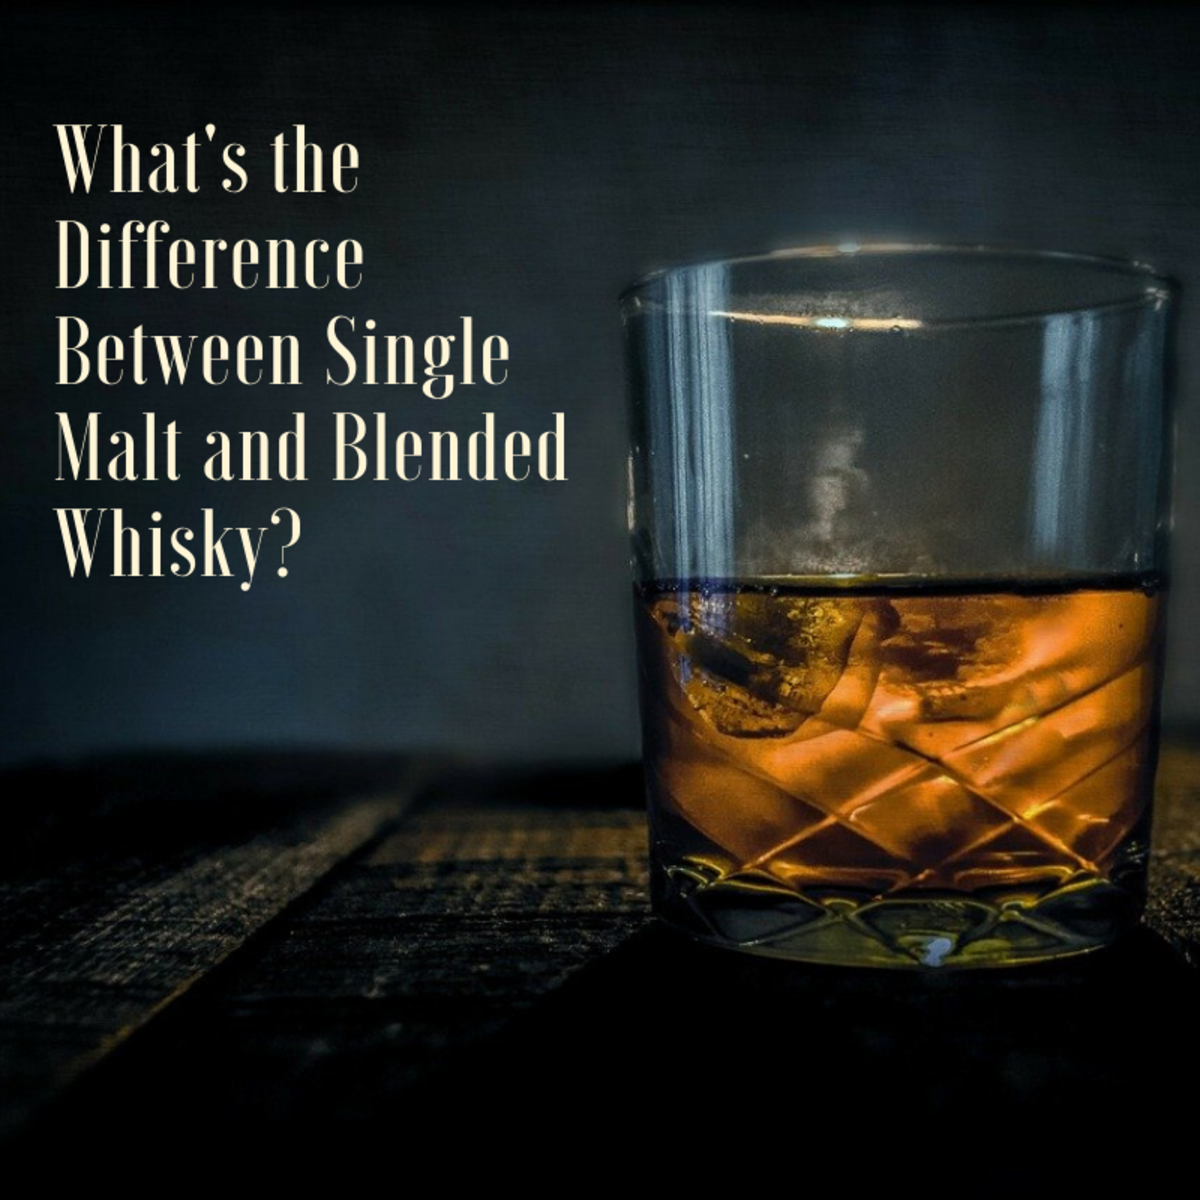 This article will break down the differences between single malt and blended whiskys.